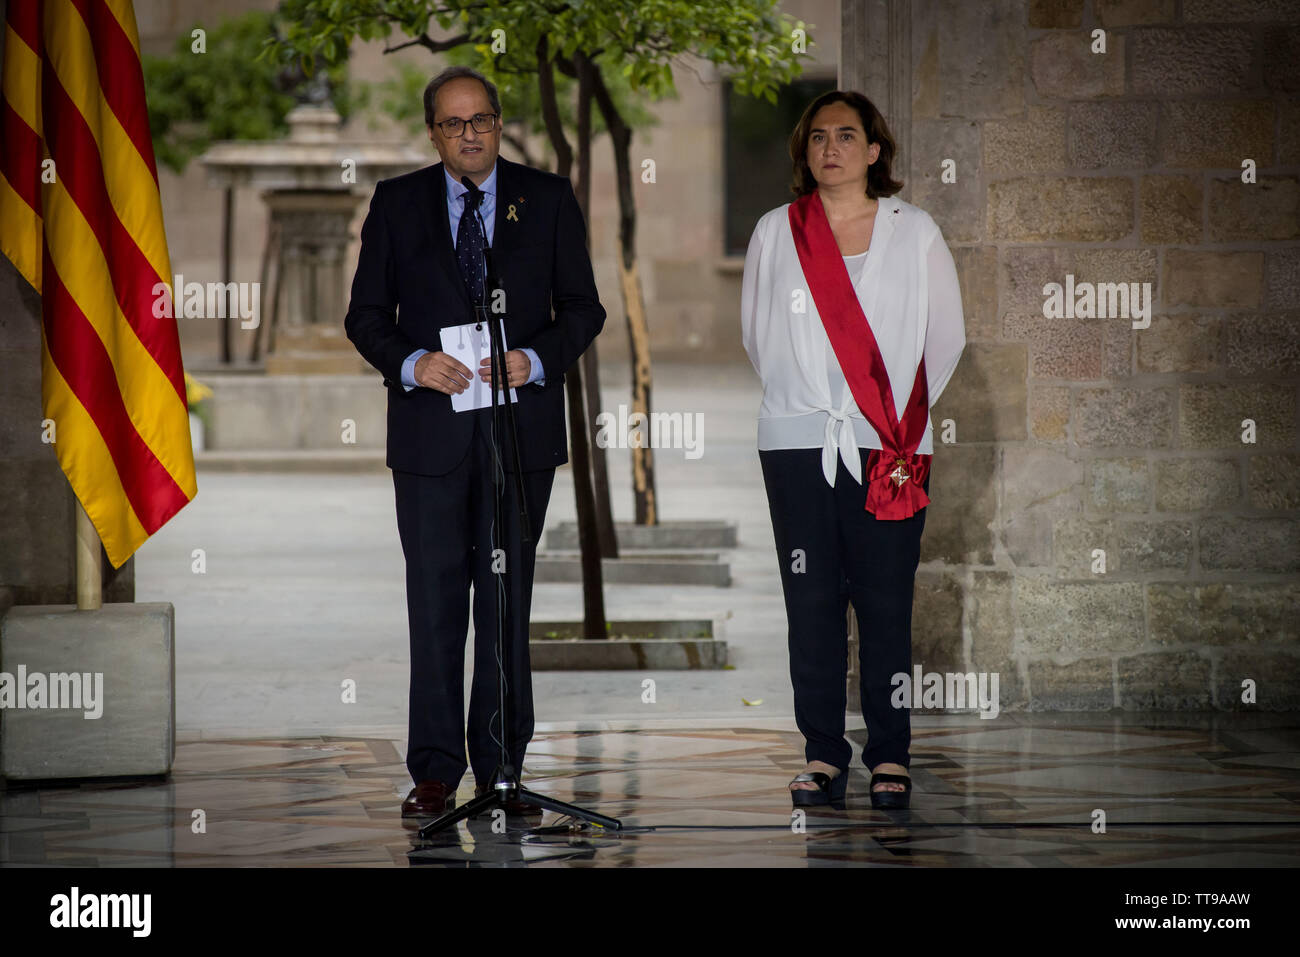 Catalan President Quim Torra has received the re-elected mayors of Barcelona Ada Colau. Ada Colau has been re-elected as mayoress for Barcelona, the pro-independence Catalan Republican Left party won marginally more votes than Colau's group, but Colau retains office after reaching an agreement with the Catalan branch of the socialist party and Manuel Valls councillors. - Stock Image